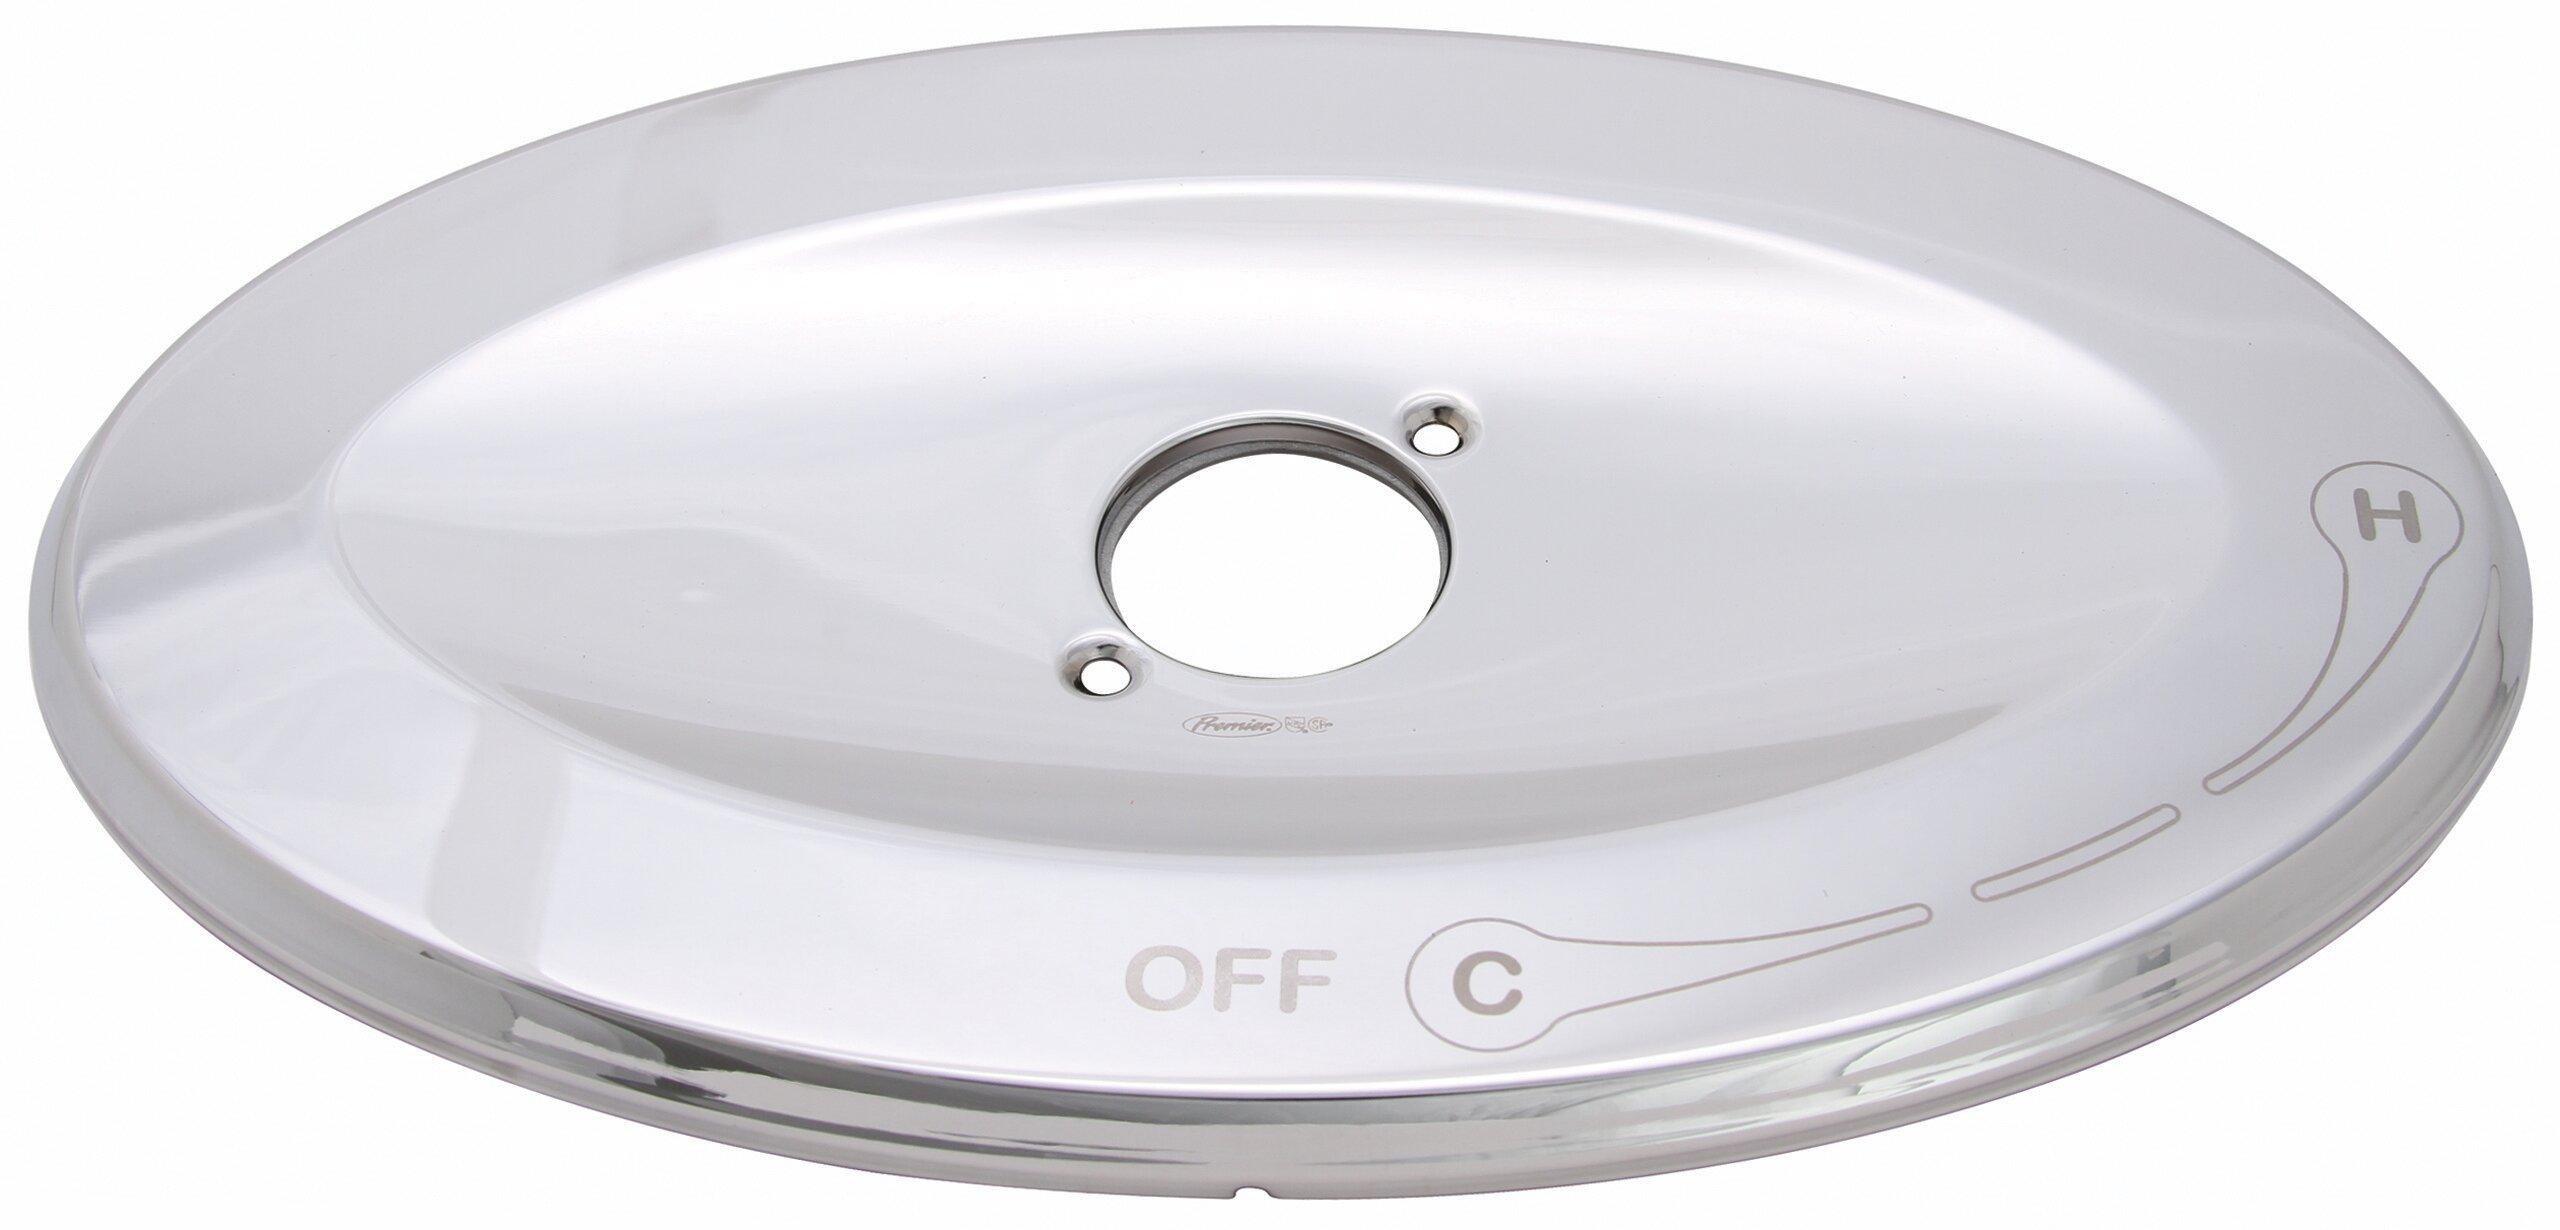 premier faucet tub and shower remodel plate wayfair